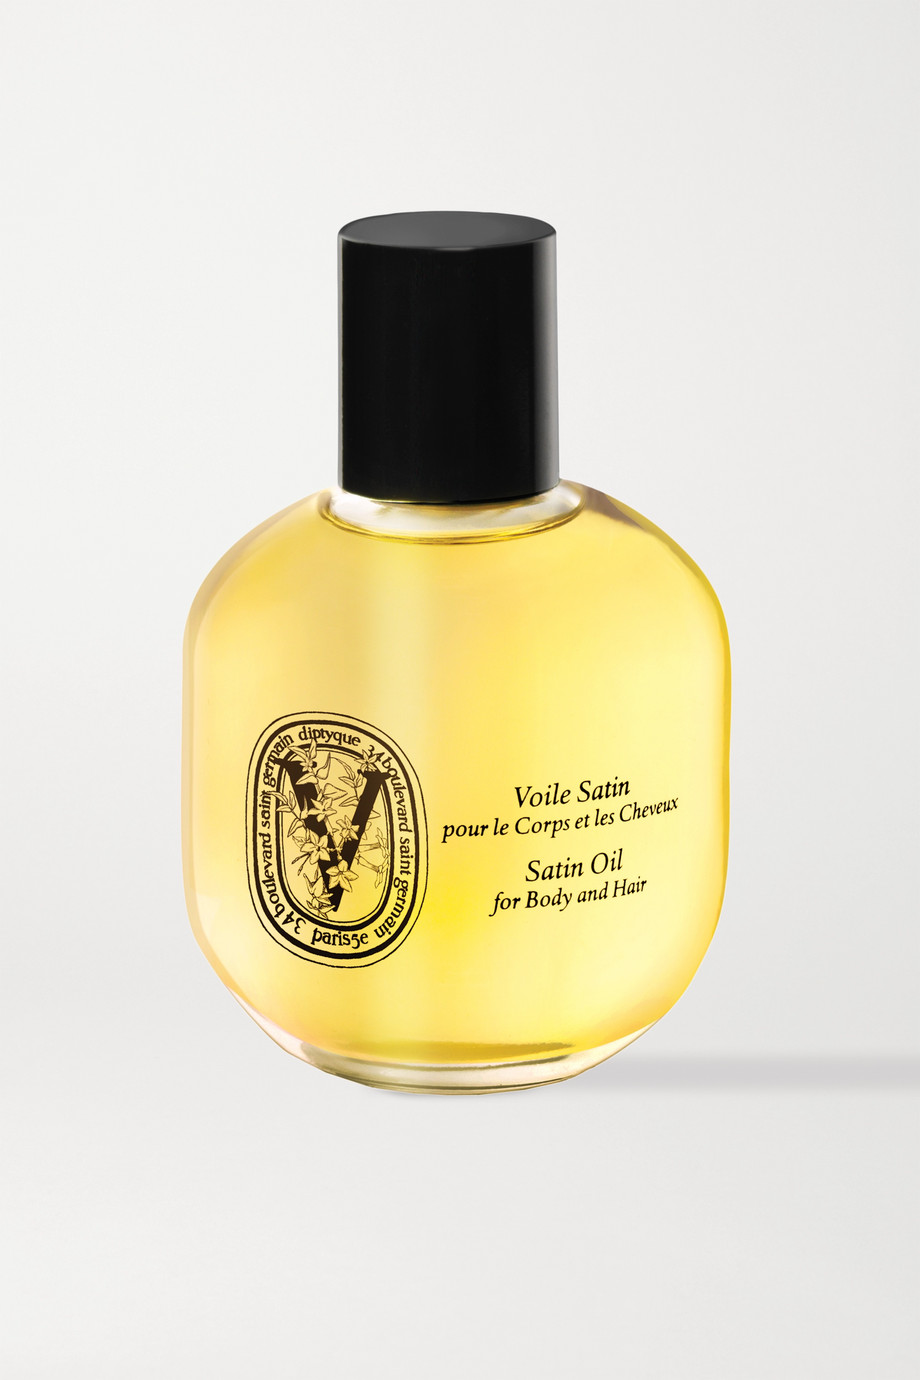 DIPTYQUE Satin Oil for Body and Hair, 100ml